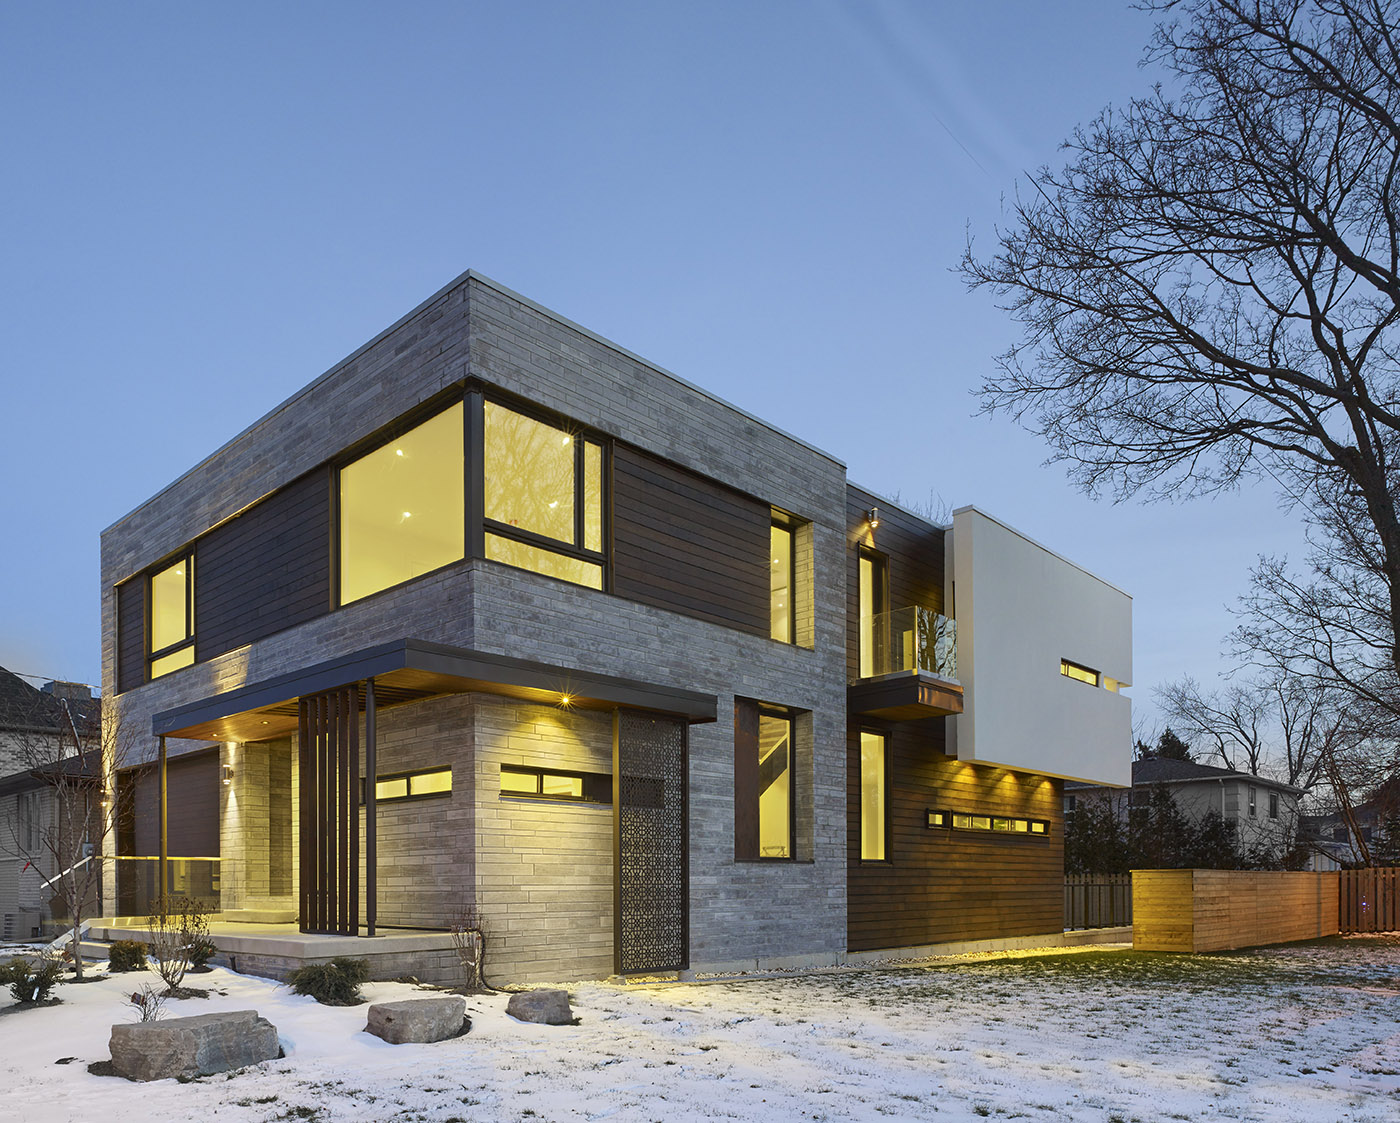 Modern home combines design and functionality. Simple lines combined with natural and refined materials